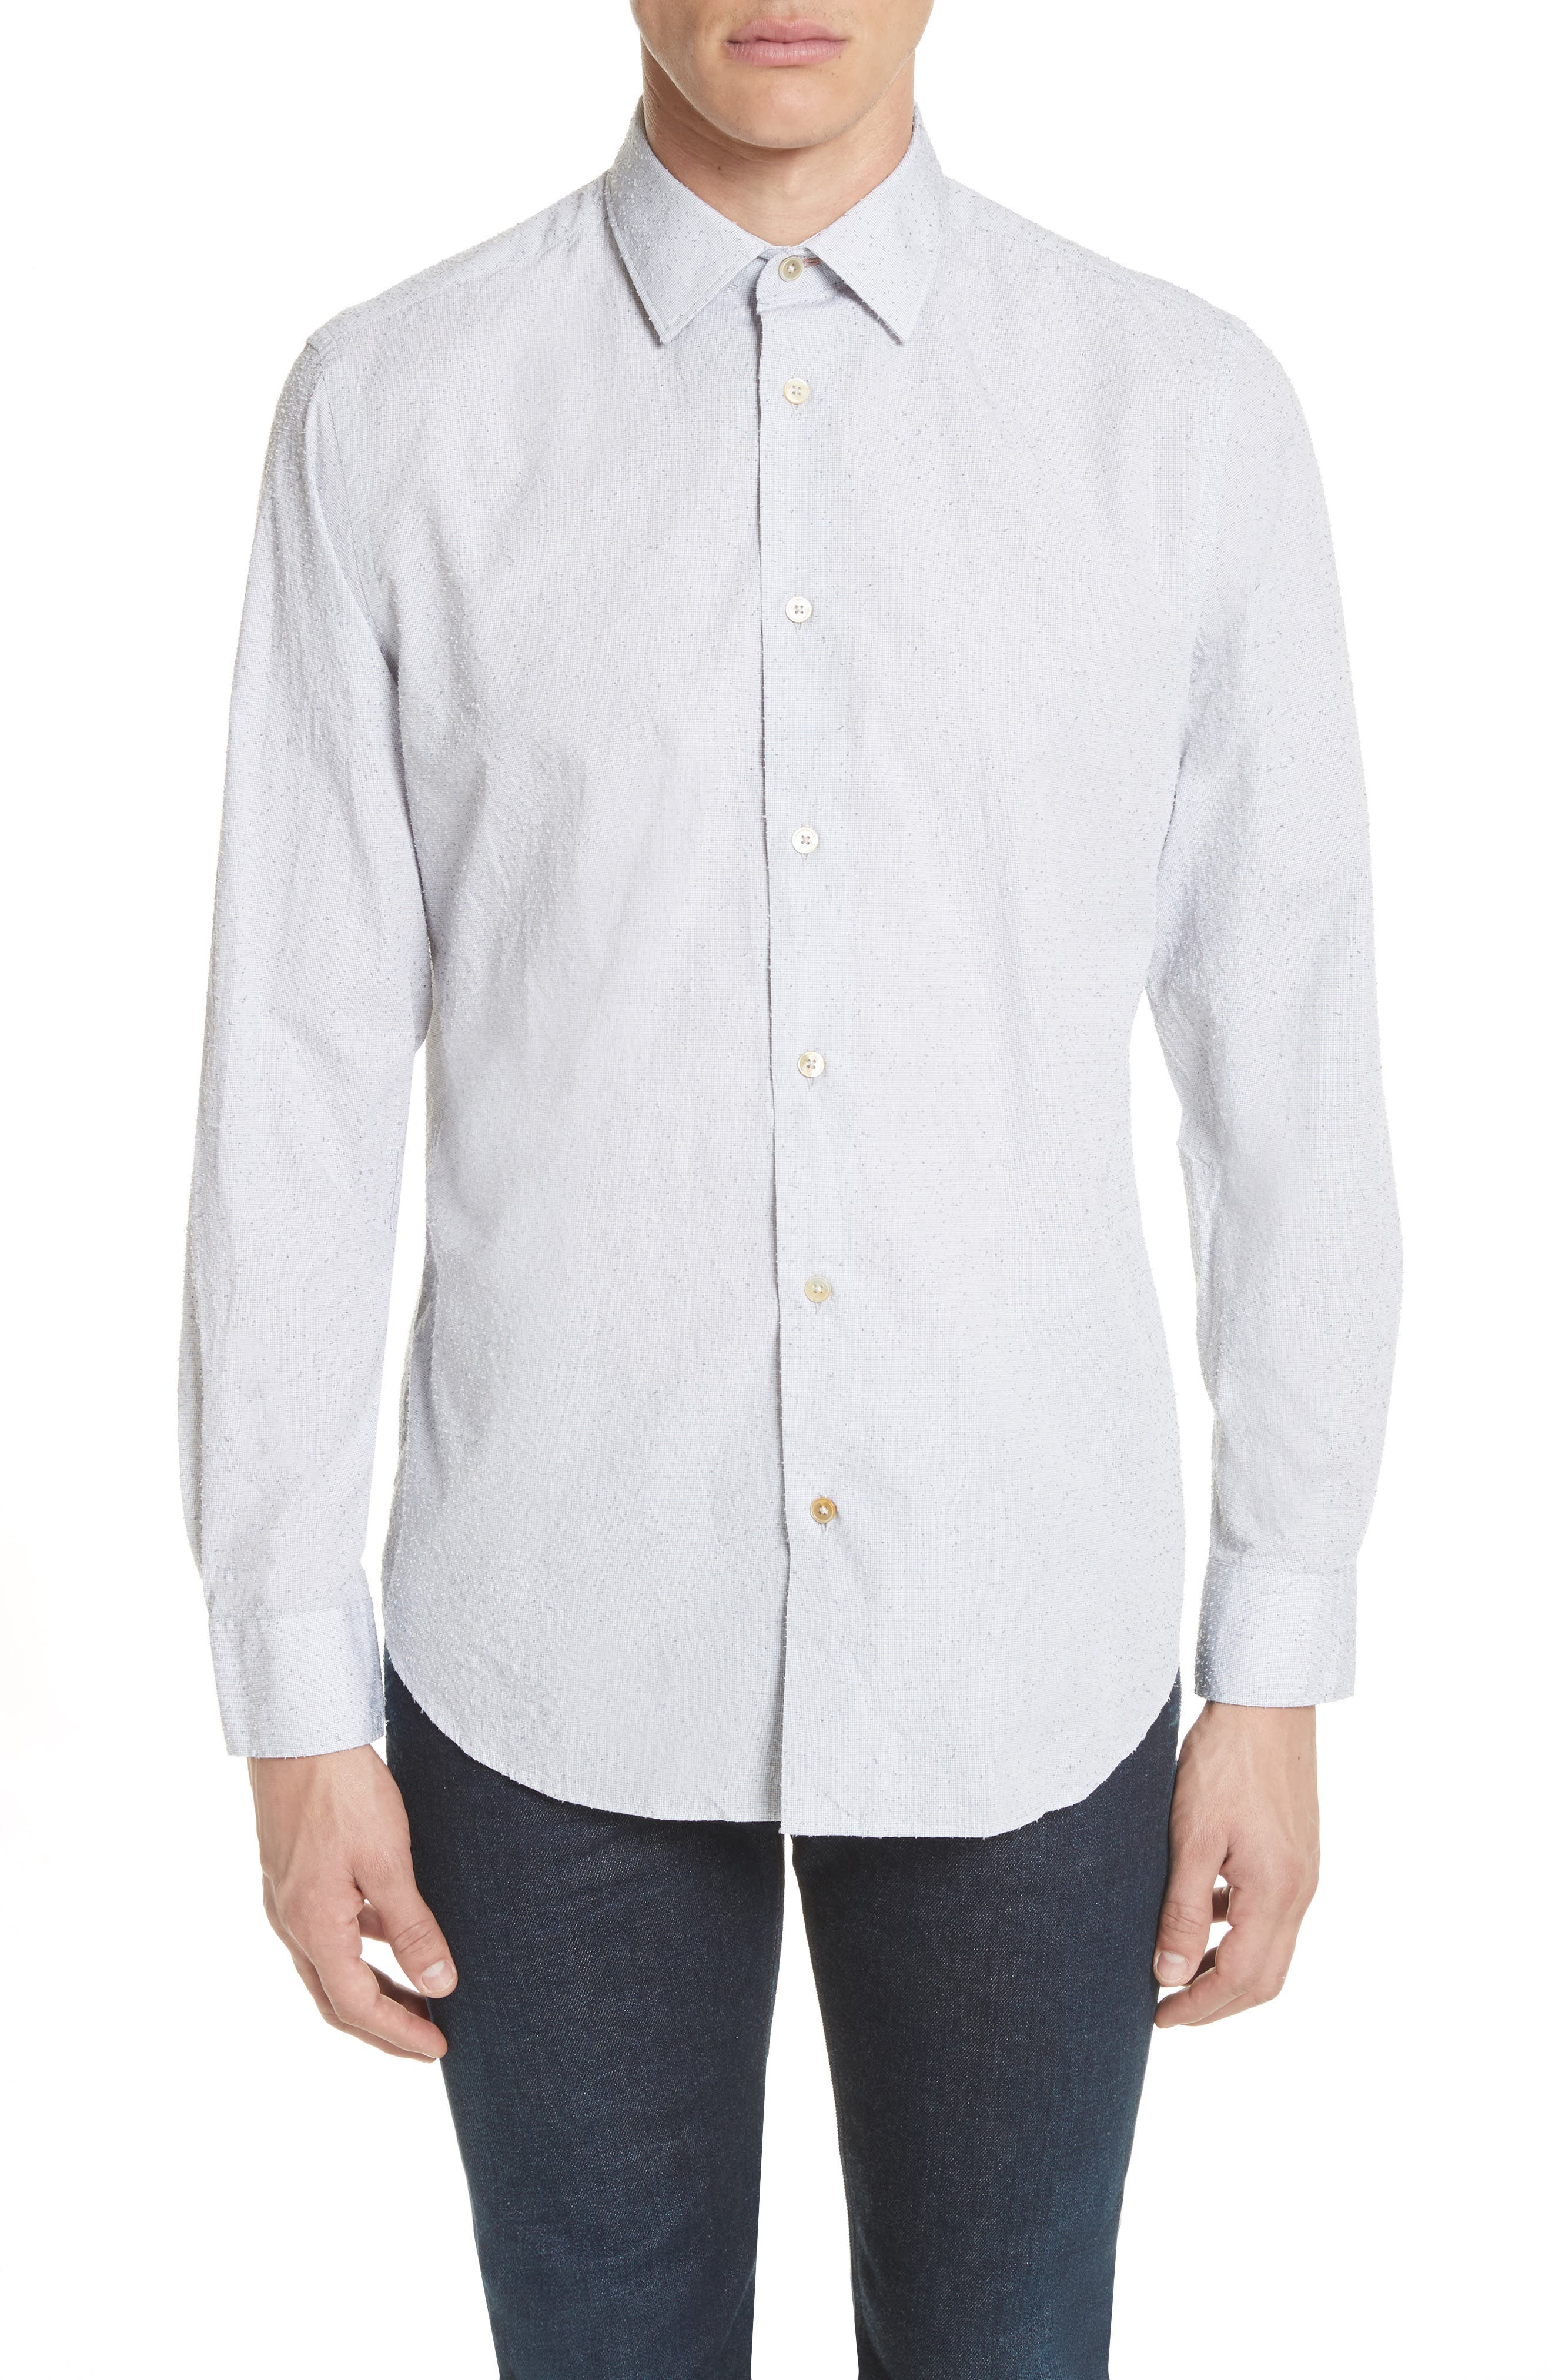 Nep Dot Woven Shirt,                         Main,                         color, Blue